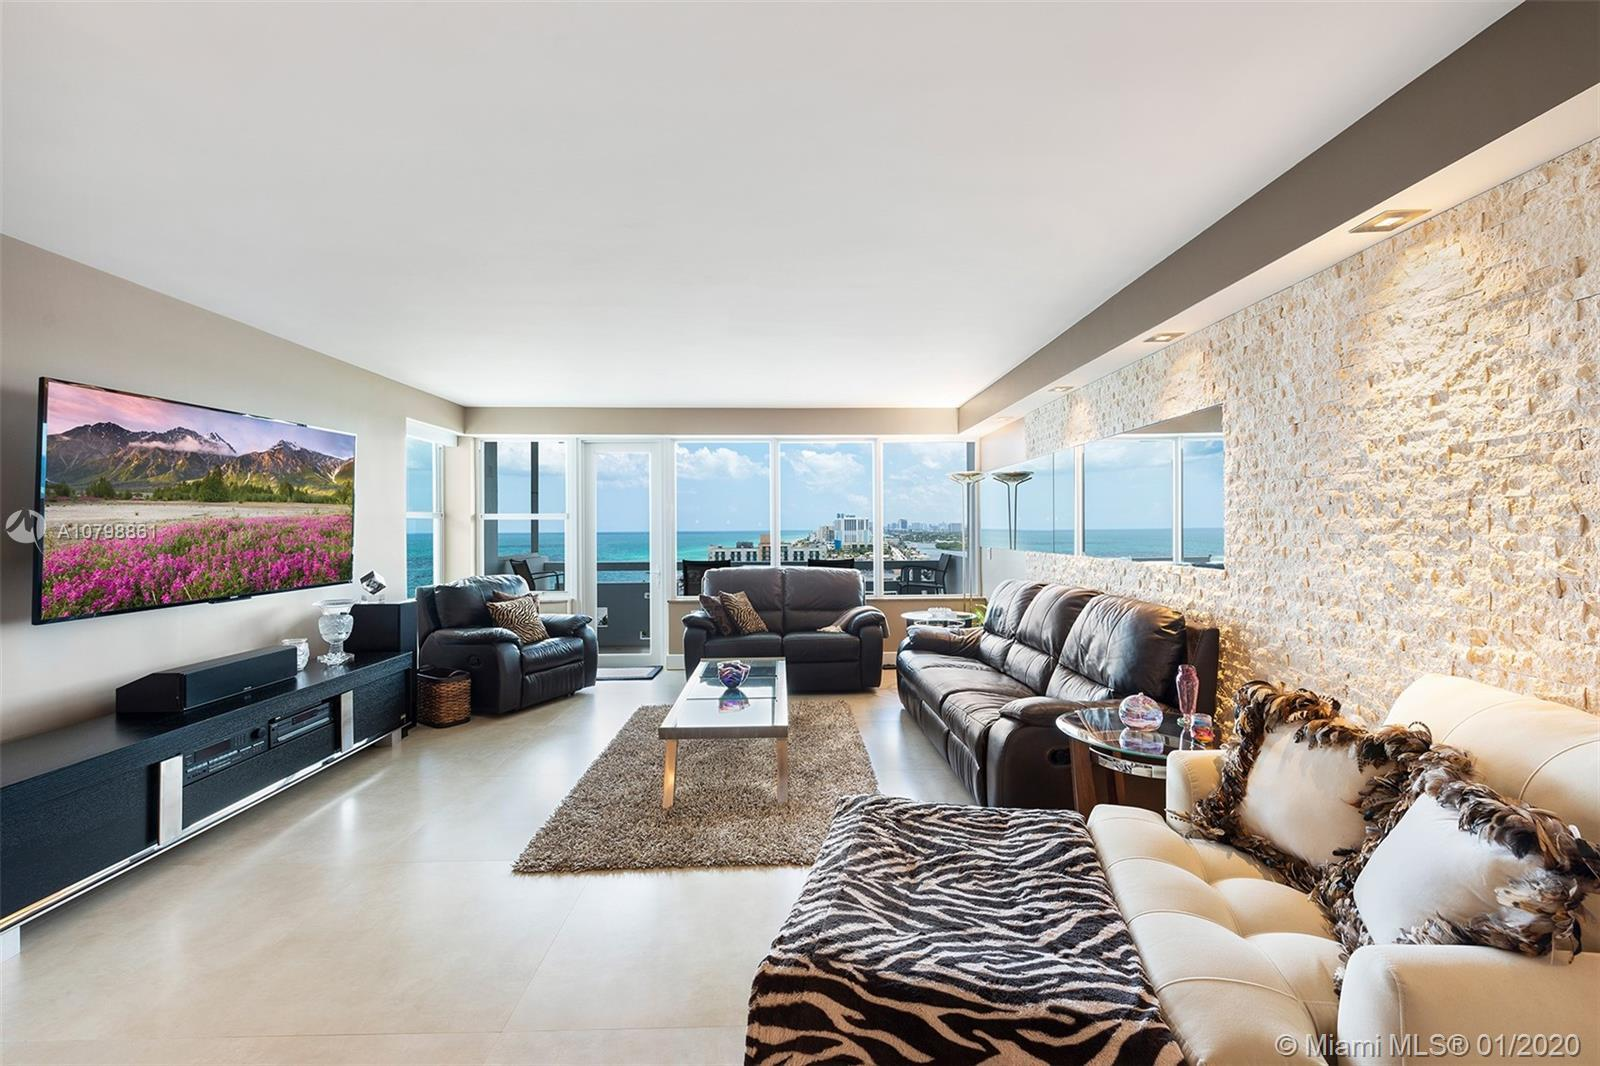 Luxury Penthouse in the Sky! Largest 2 bedroom/2 bath in Hollywood Towers. Beautiful, modern renovat